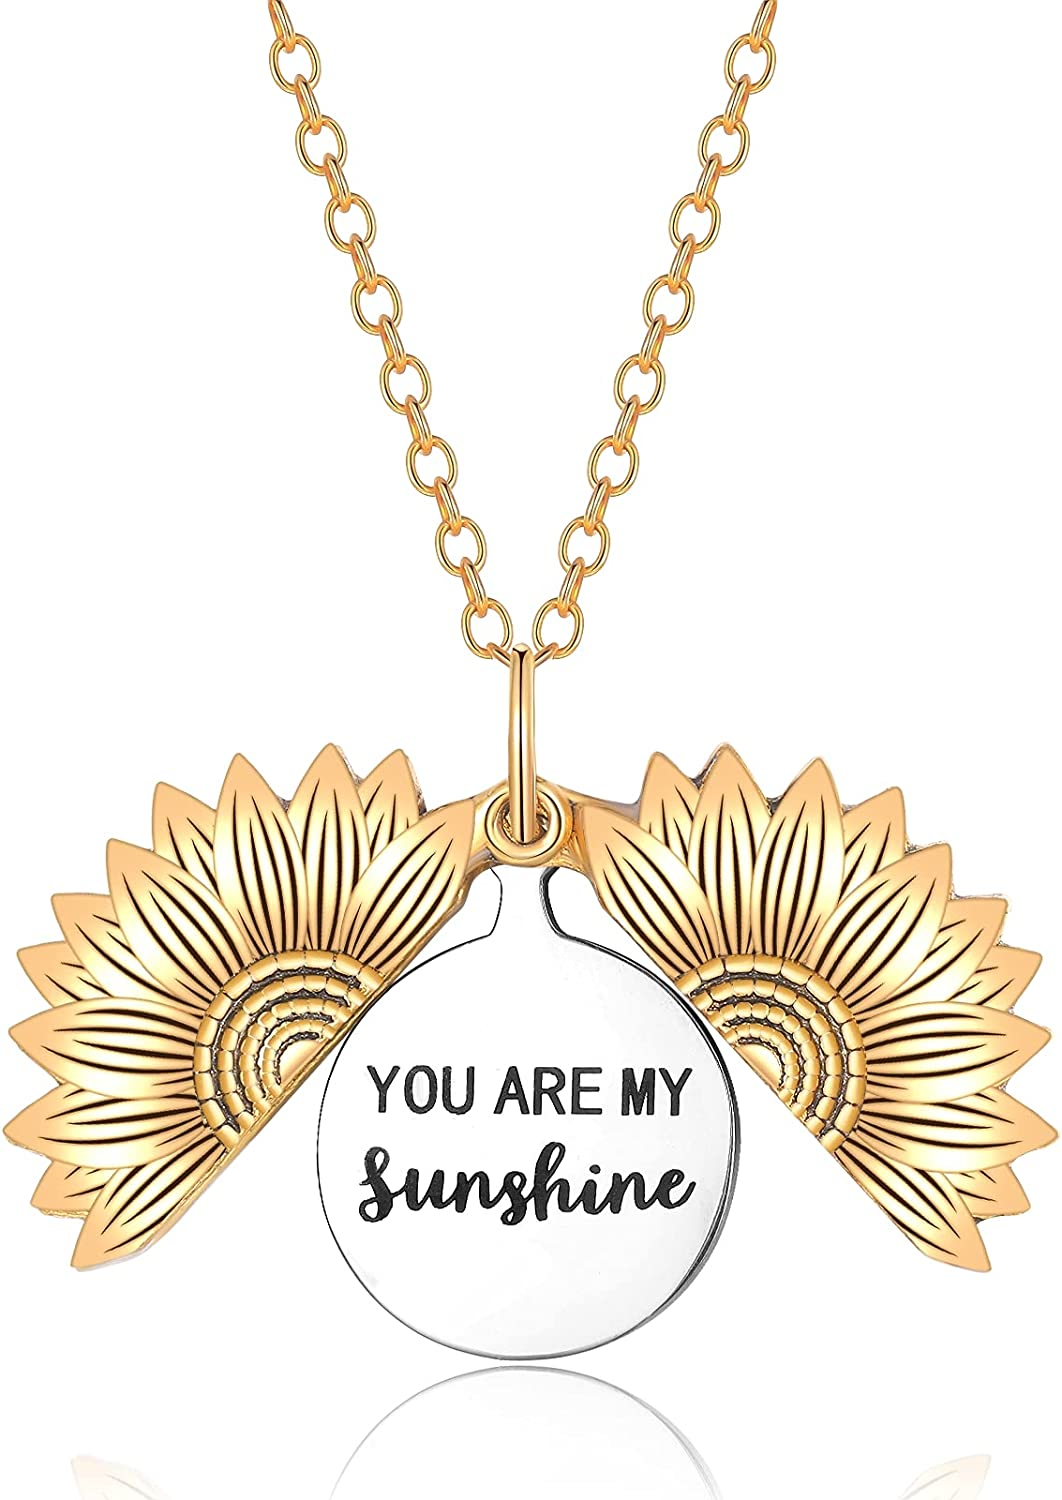 morniface Sunflower Necklace Gift for Women Girls,You are My Sunshine Necklace,Inspirational Sunflower Locket Necklace Graduation Gift